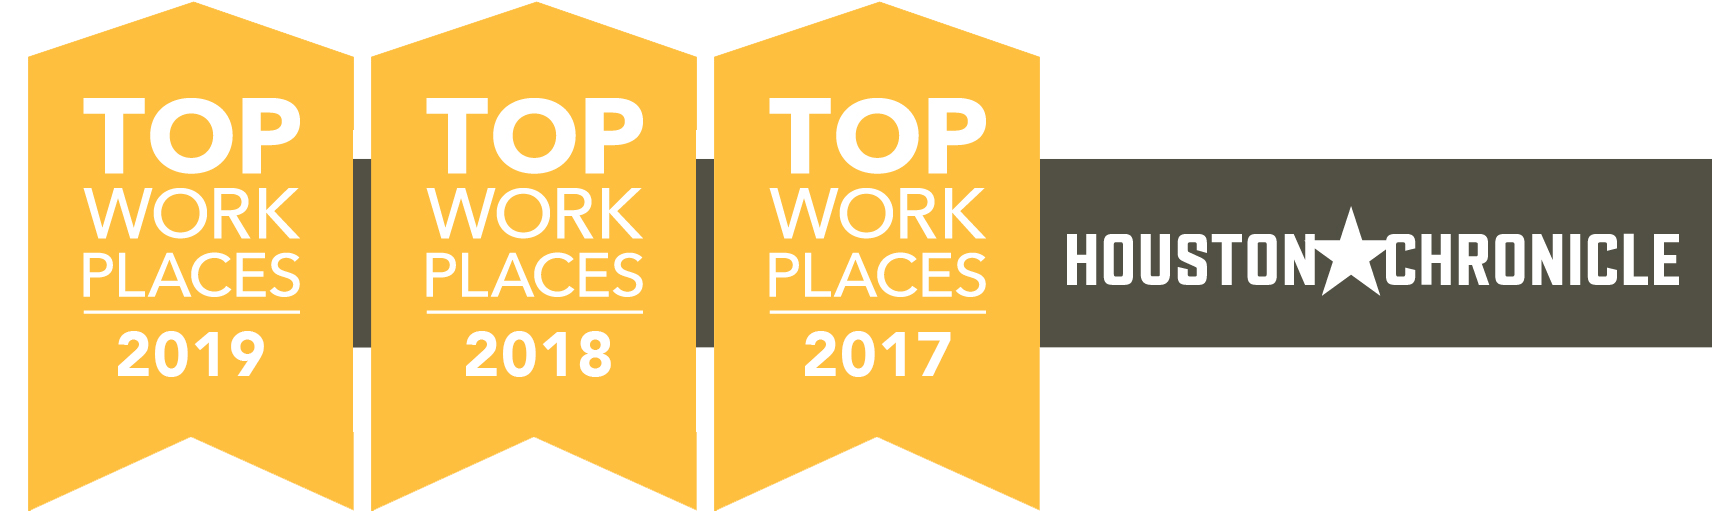 Callon Petroleum is recognized as one of the top places to work in 2017, 2018, and 2019 by the Houston Chronicle.